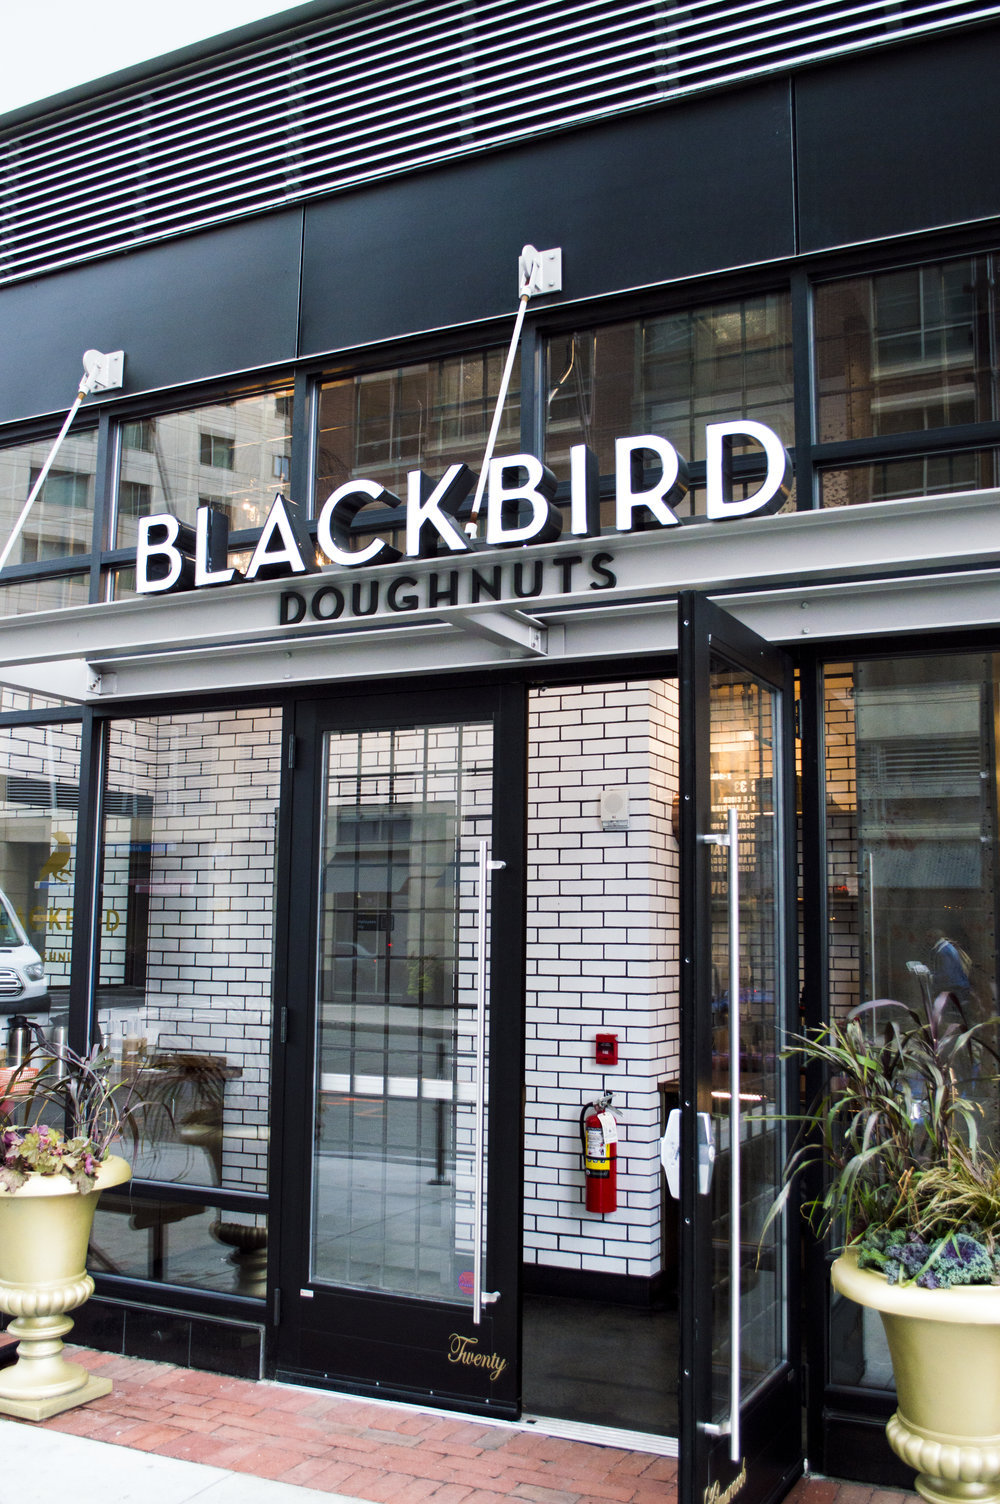 we started off our day with blackbird doughnuts! we've had union square but this was our first time trying blackbird, and the new little stand by fenway is so cute!